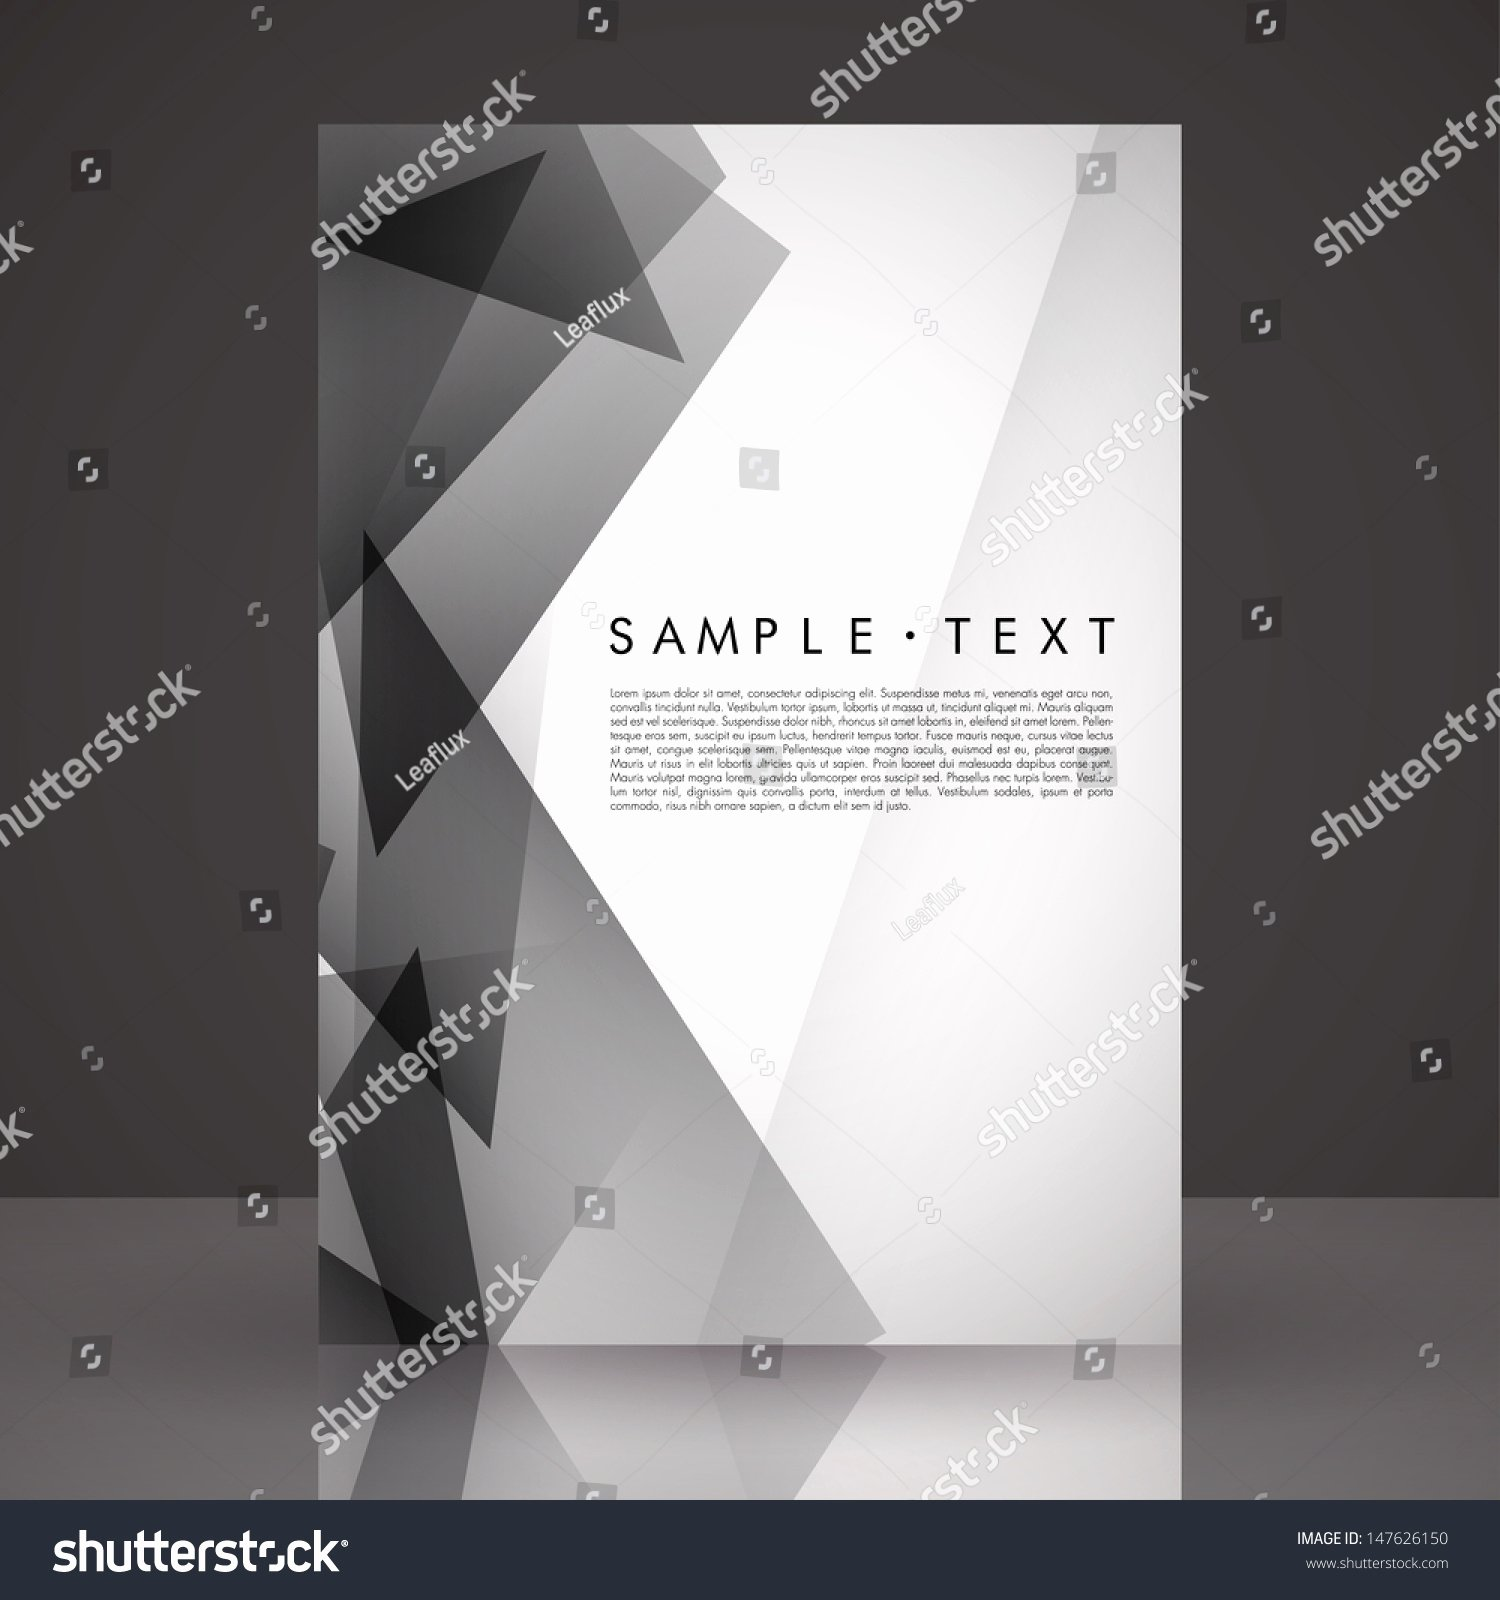 Black and White Flyer Templates Fresh Elegant Black and White Flyer Template